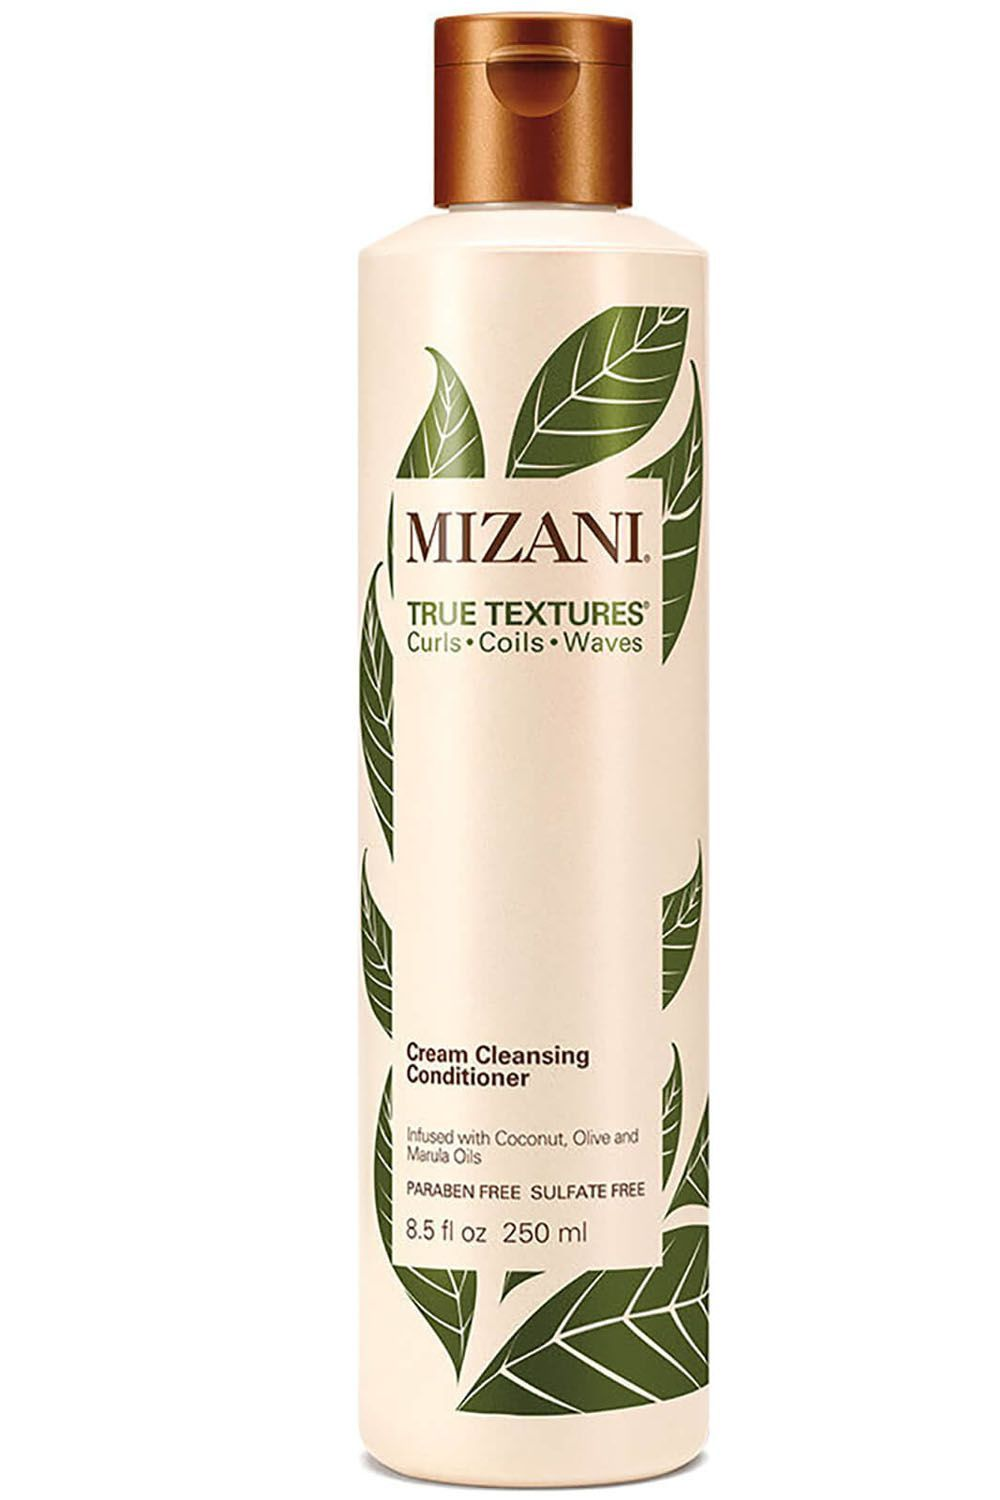 15 Best Cleansing Conditioners And Co